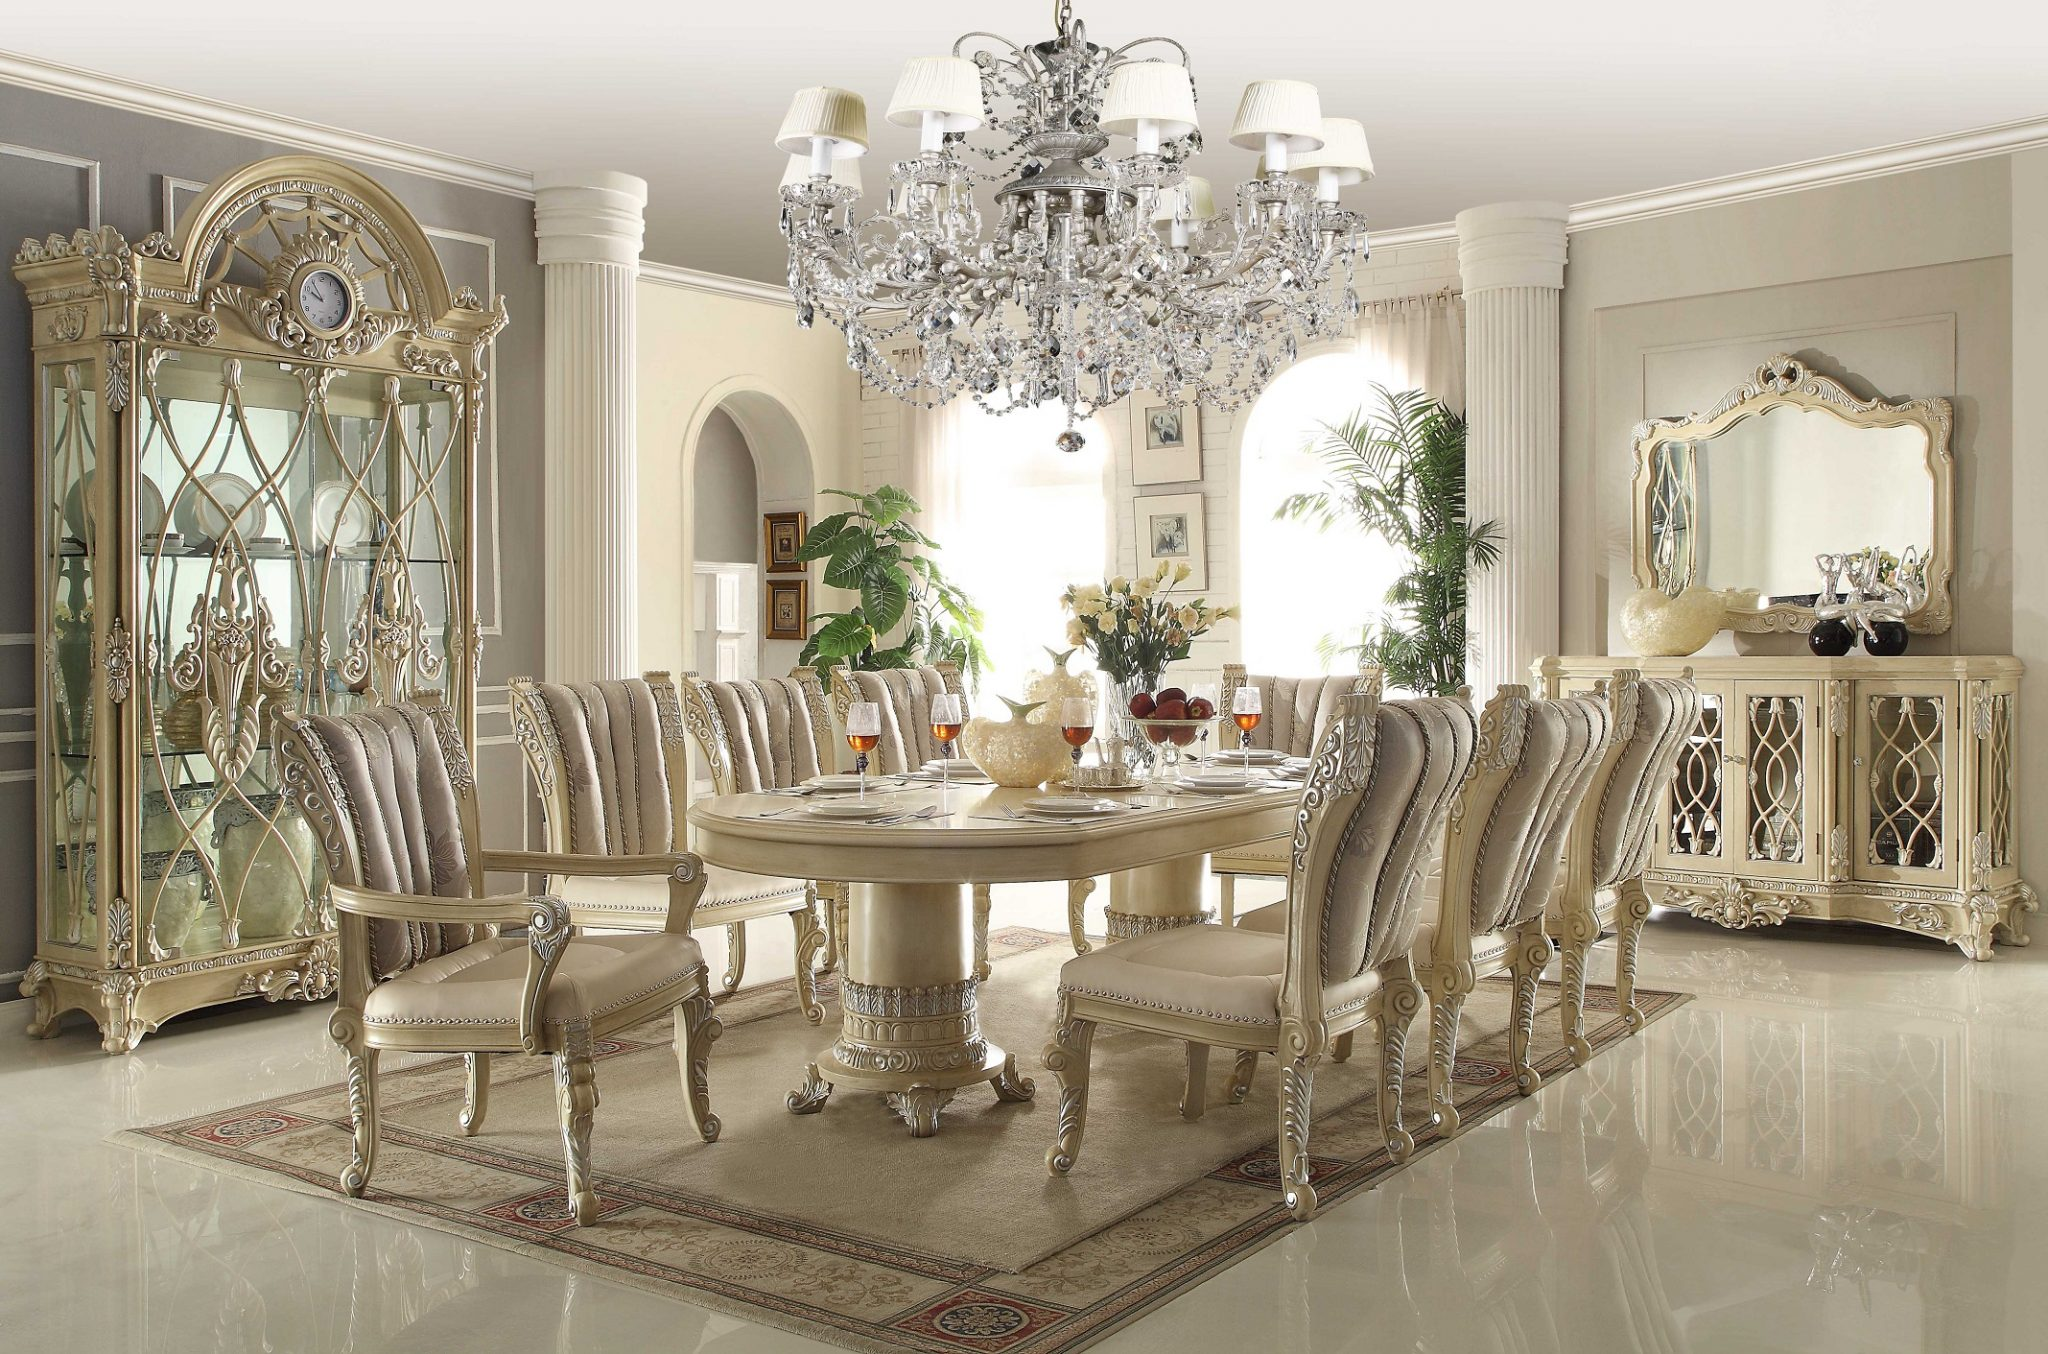 hd 5800 homey design royal dining collection set lovely vintage dining room sets home design ideas